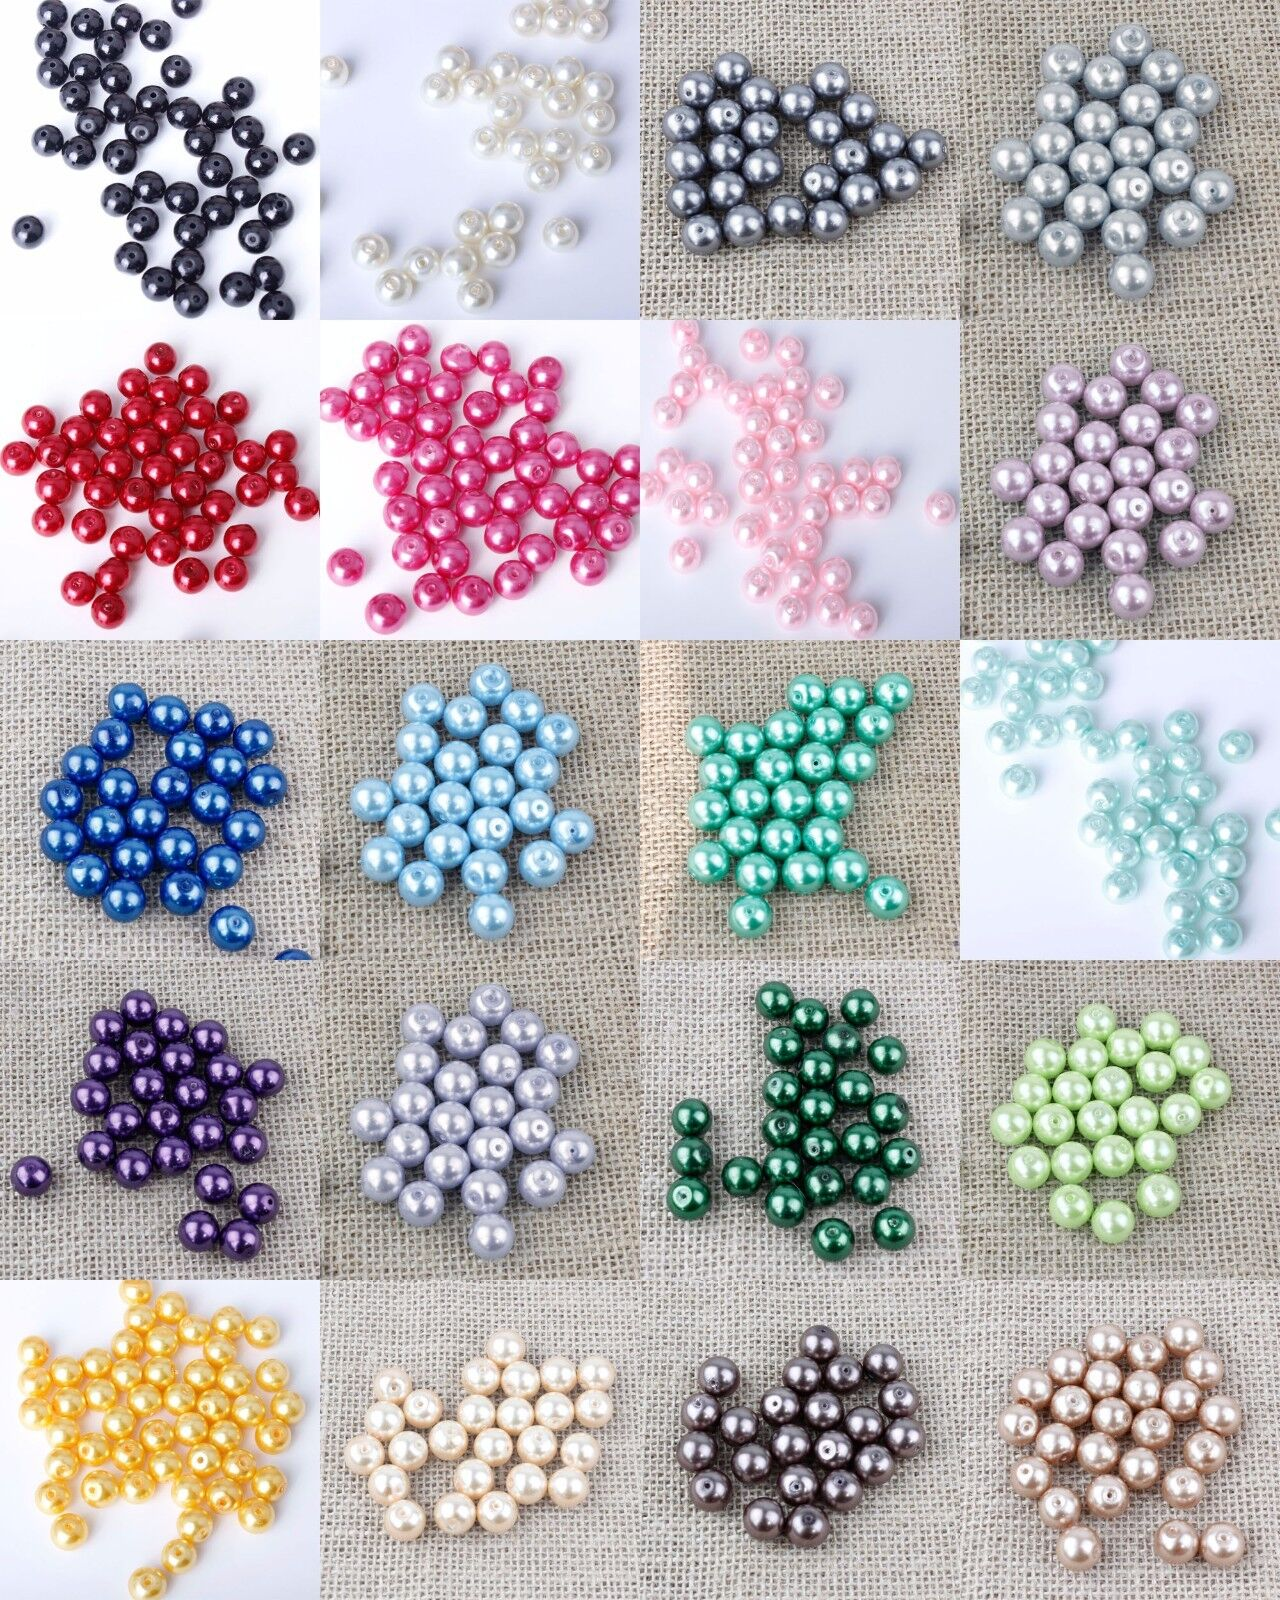 Jewellery - Glass Pearl Beads 4,6,8,10,12mm -{[Buy 3 Get 3 Free]}- Jewellery Making Crafts